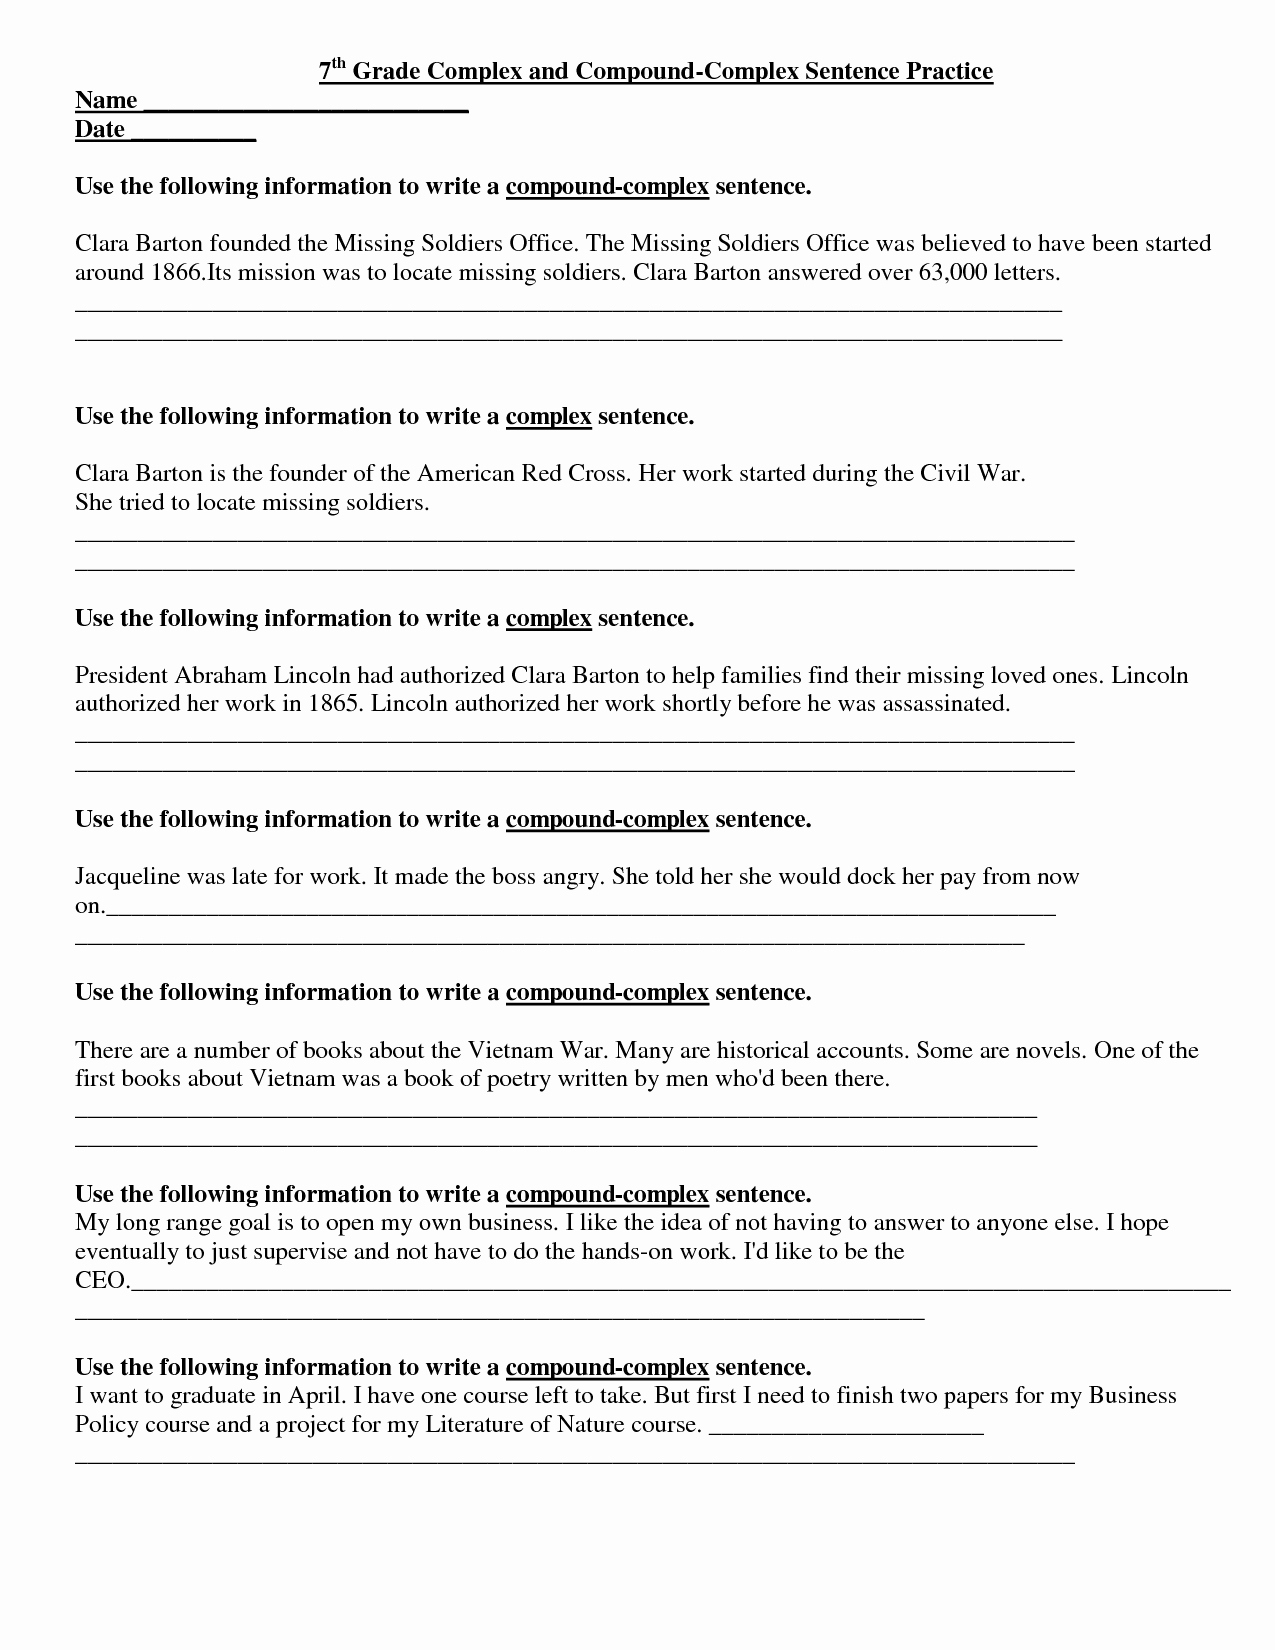 English Short Stories For Grade 4 Page 2 - Free Printable 7Th Grade | 7Th Grade Worksheets Free Printable